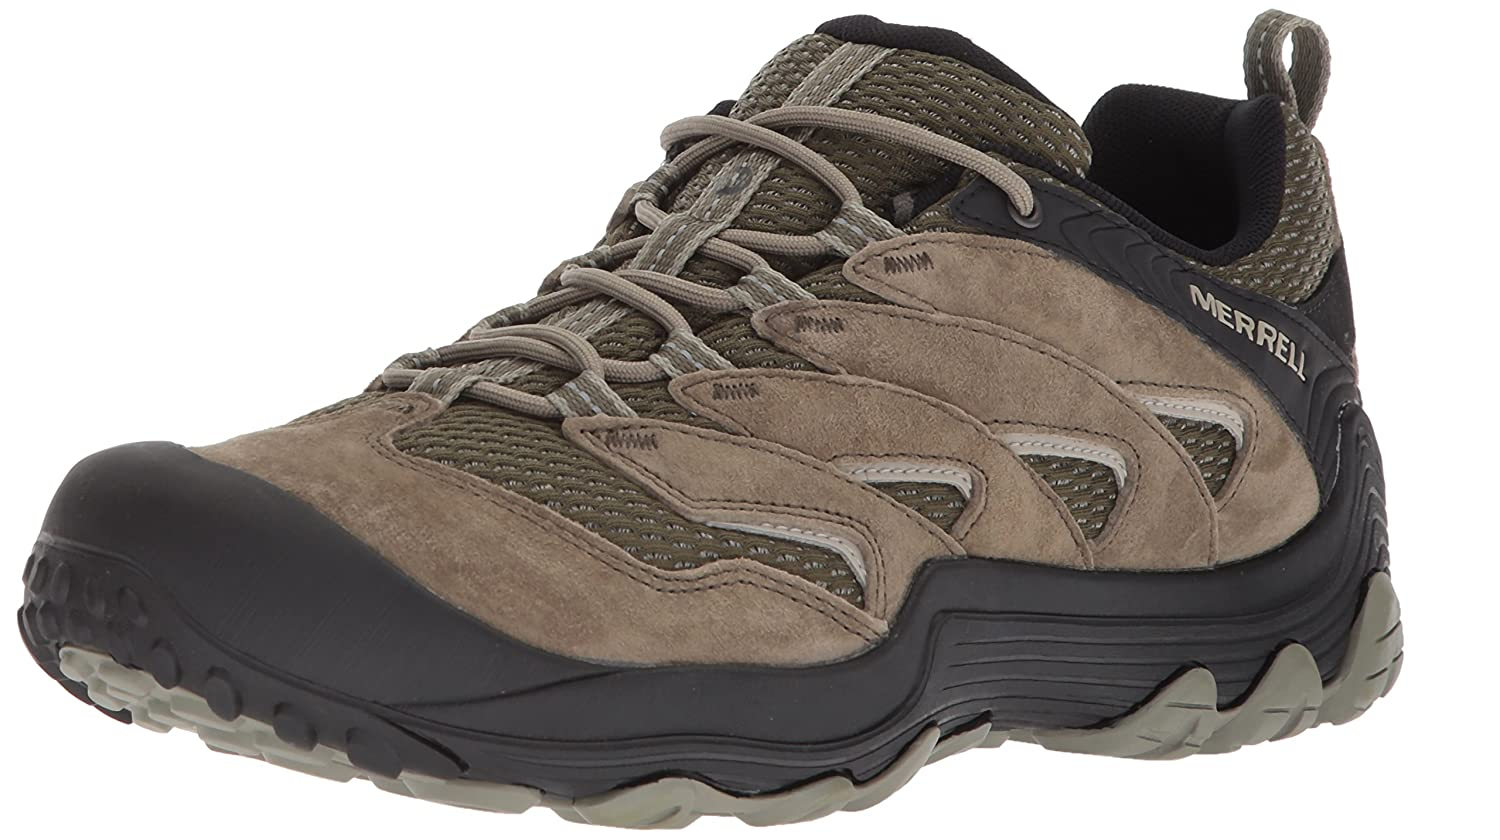 Merrell Women's Chameleon 7 Limit Hiking Boot B072398WBT 9 D(M) US|Dusty Olive Men's